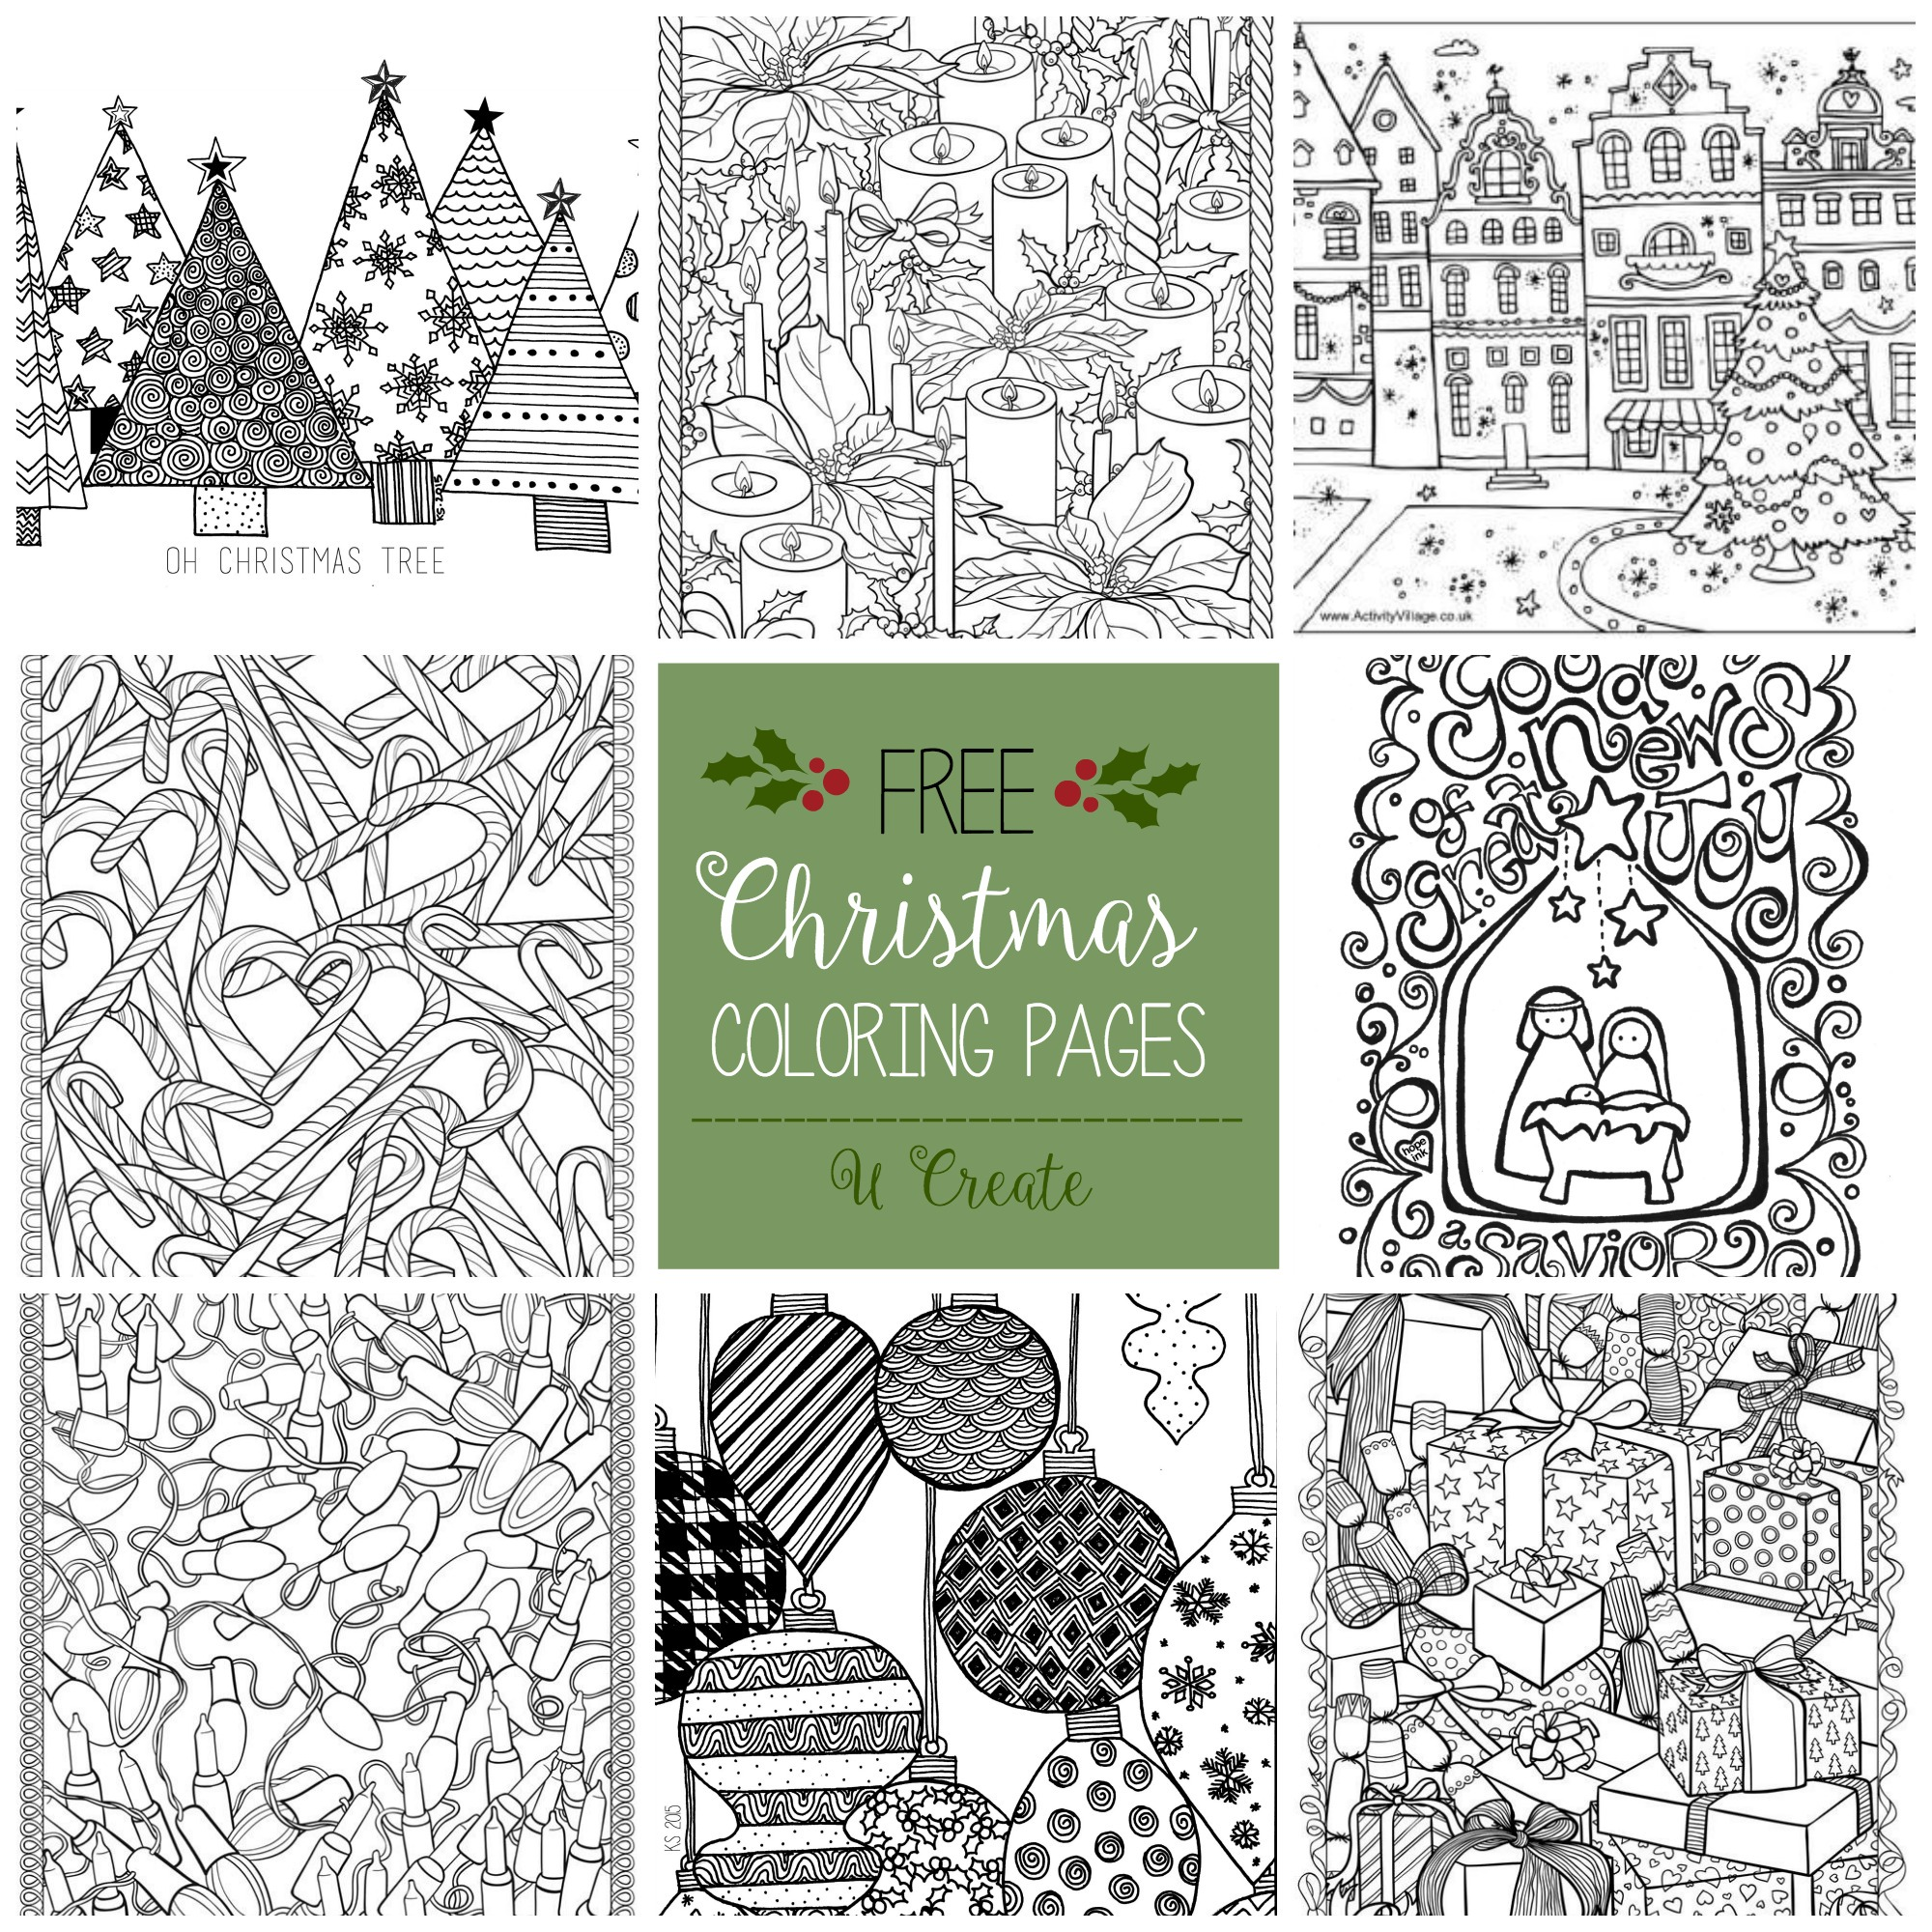 Christmas Village Coloring With Free Adult Pages U Create